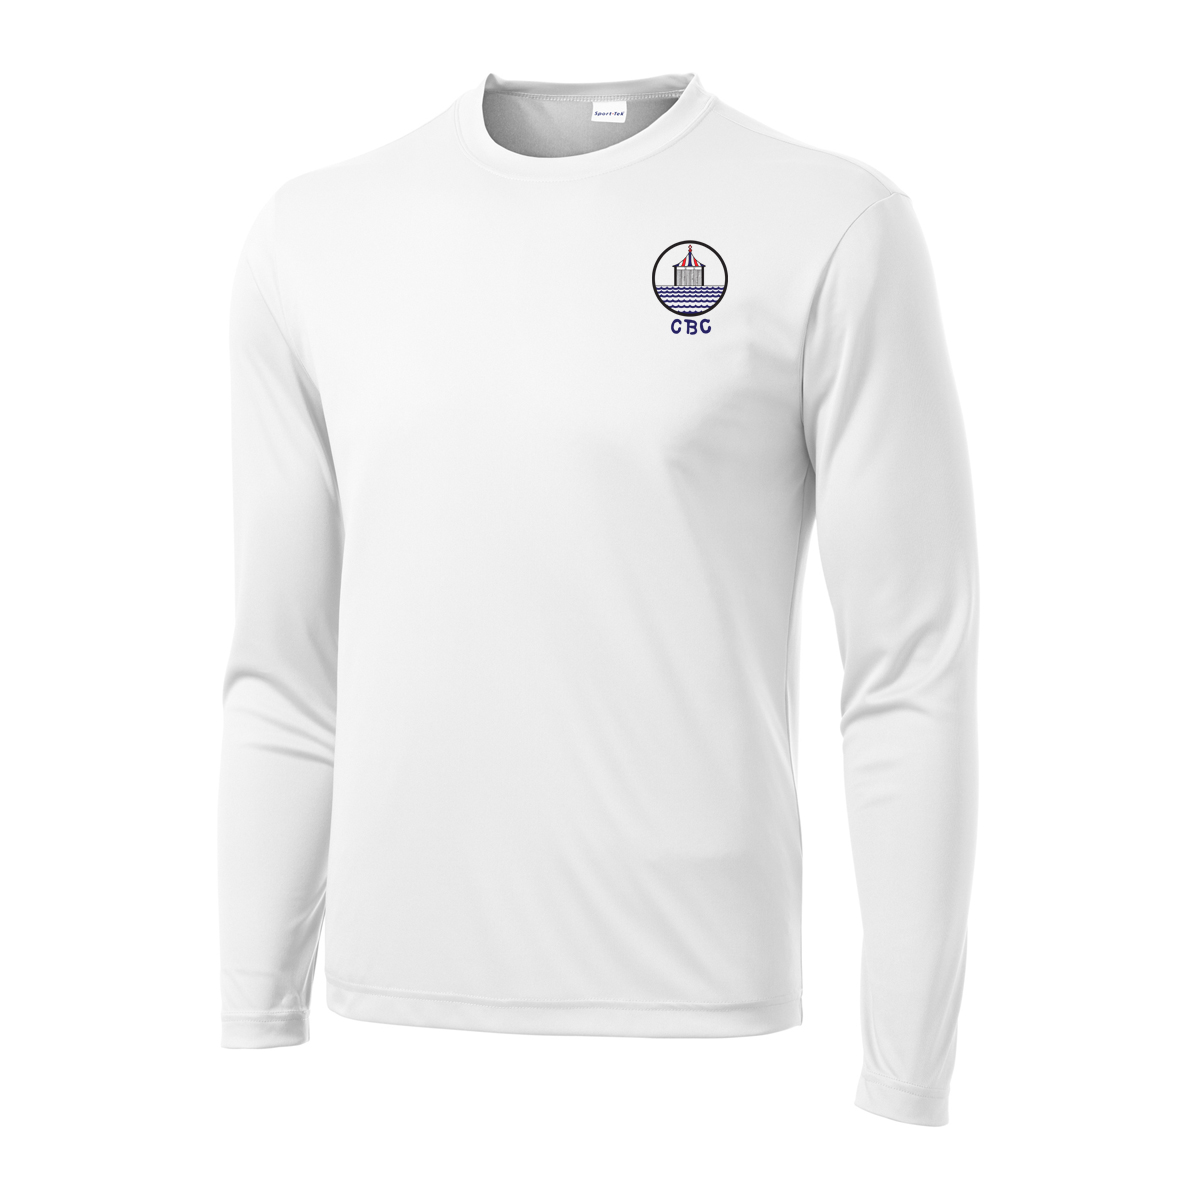 Chappaquiddick Beach Club - Men's Long Sleeve Tech Tee